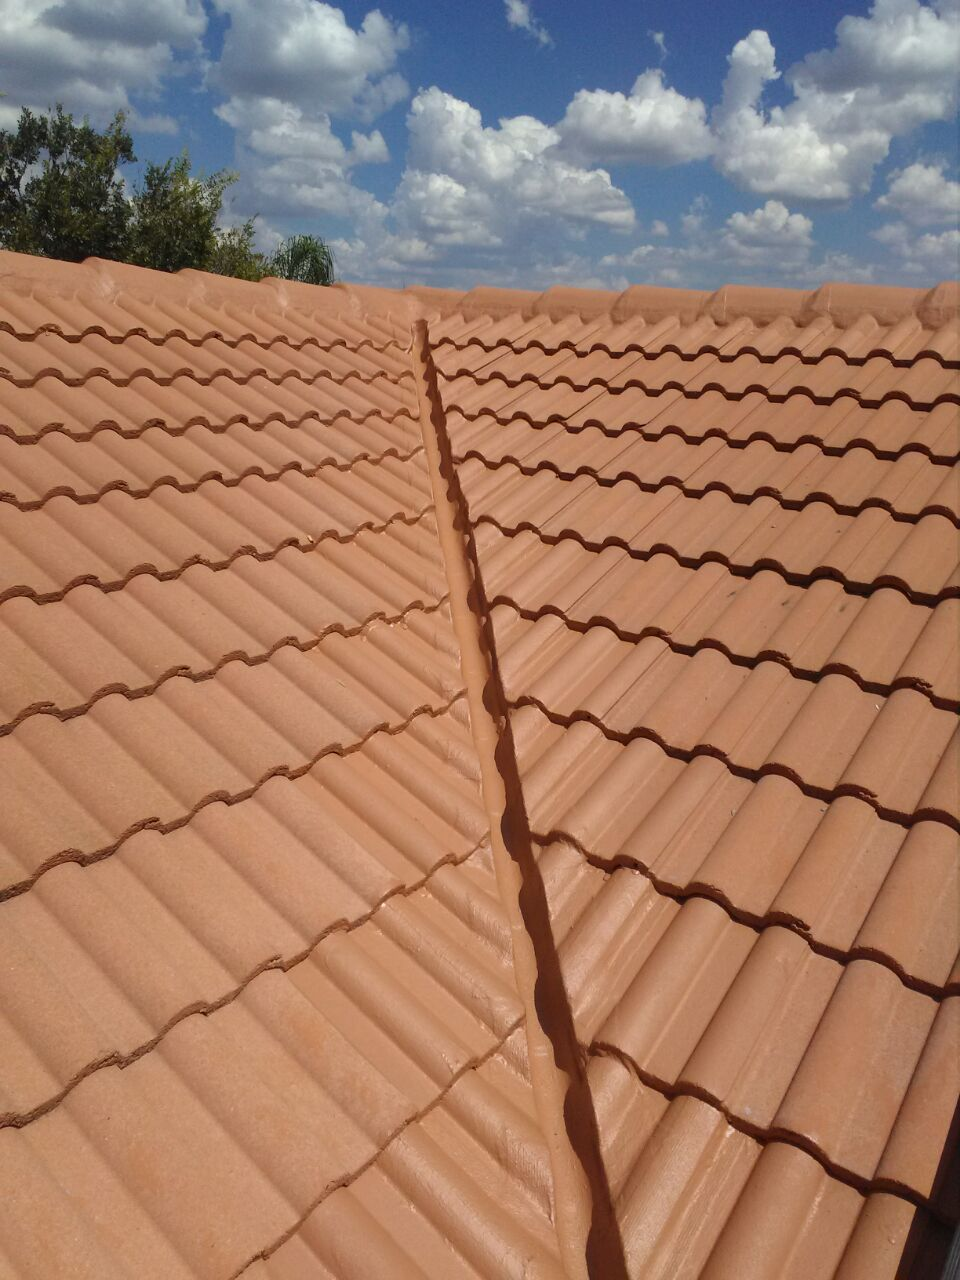 Complete Valley repair of tile roof